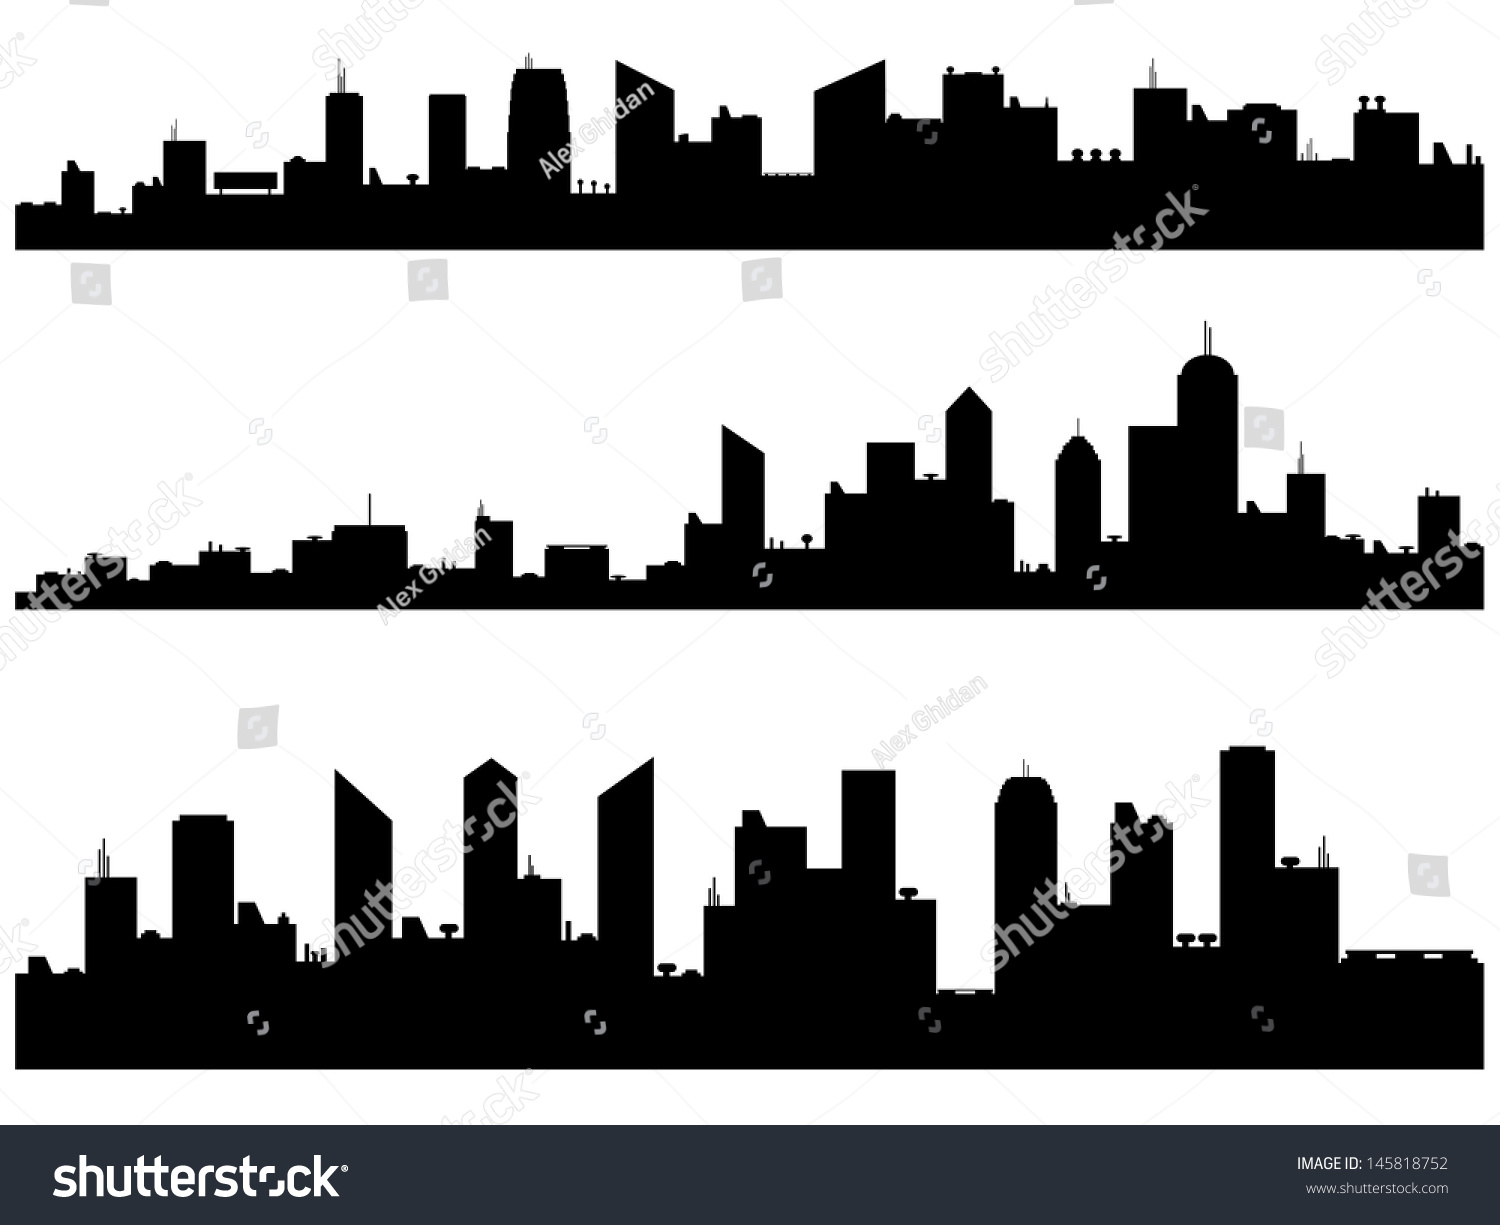 City Silhouettes Illustrated On White Stock Vector ...